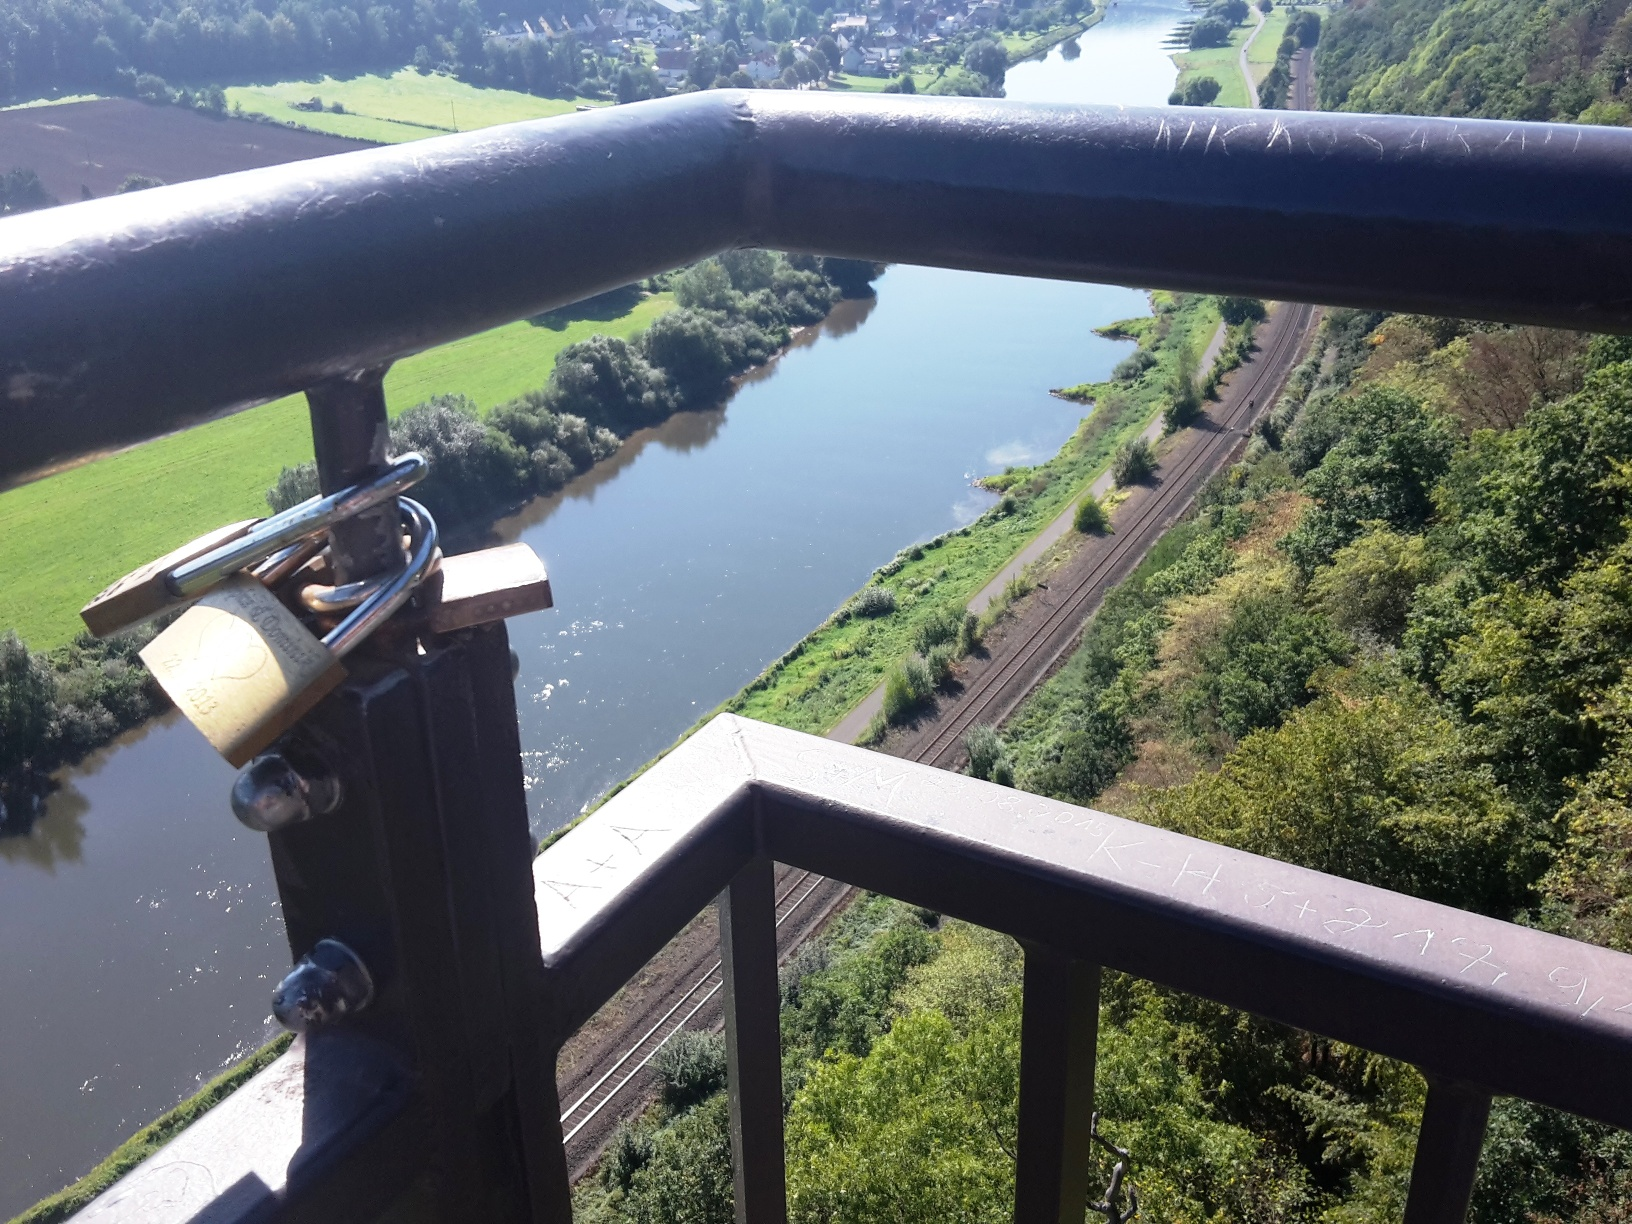 Liebesschlösser am Weser-Skywalk